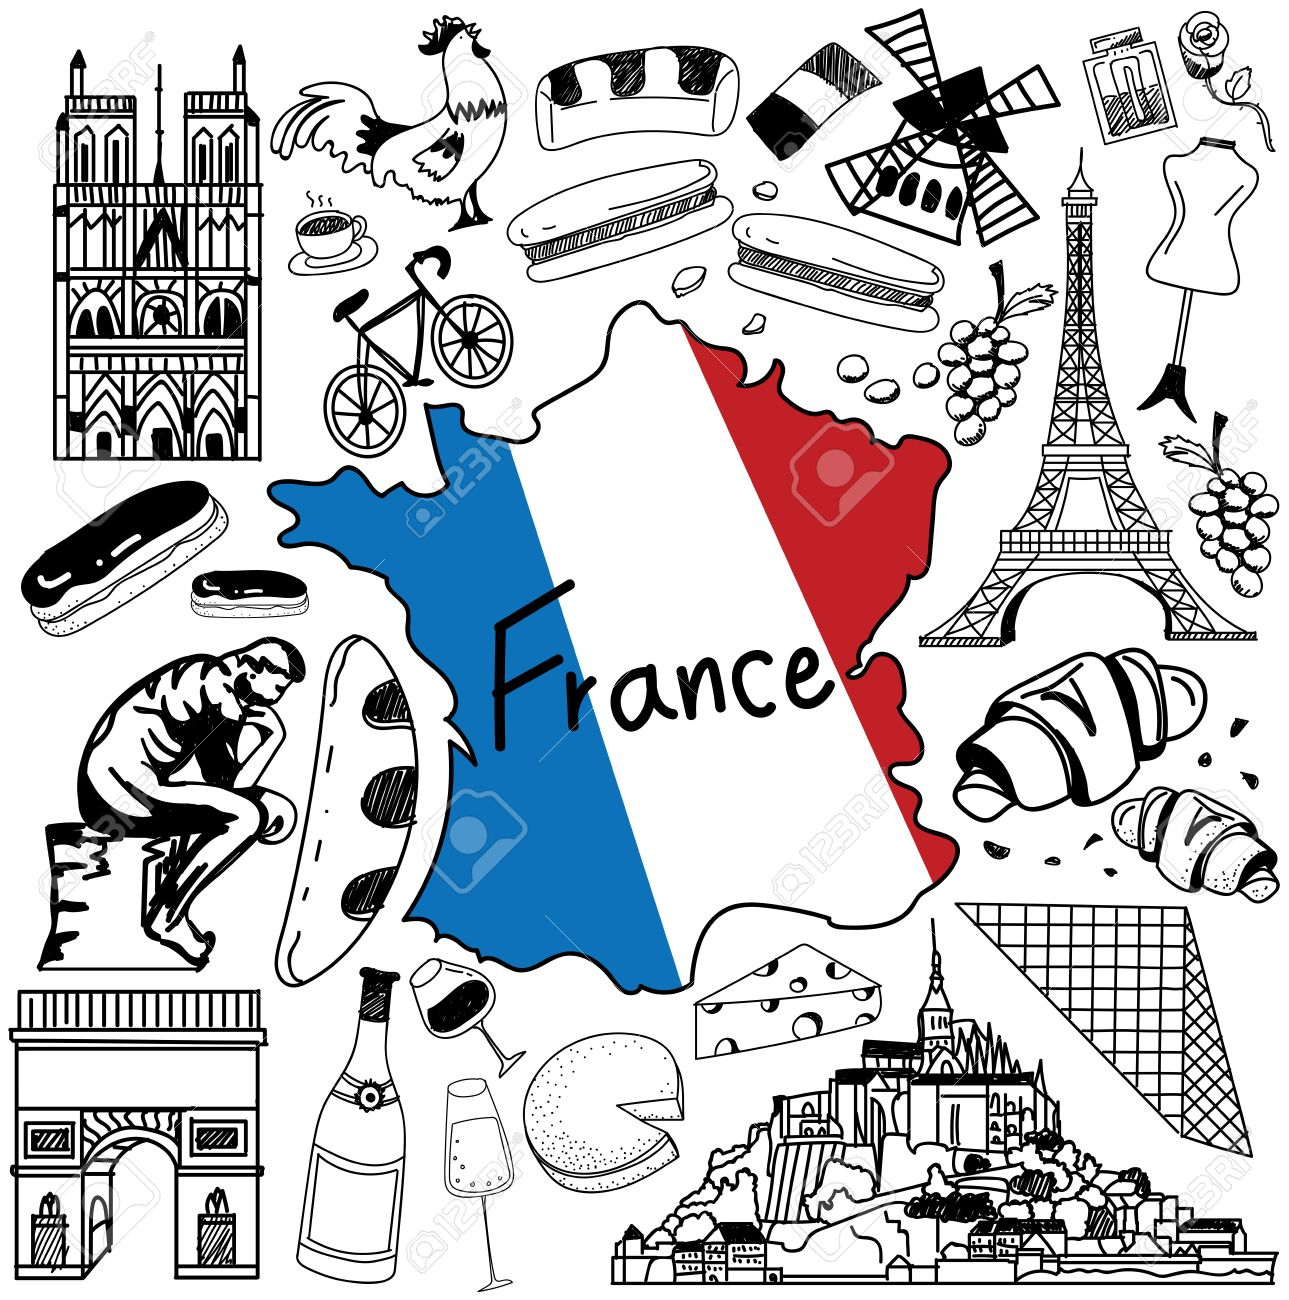 travel to france doodle drawing icon doodle with culture costume